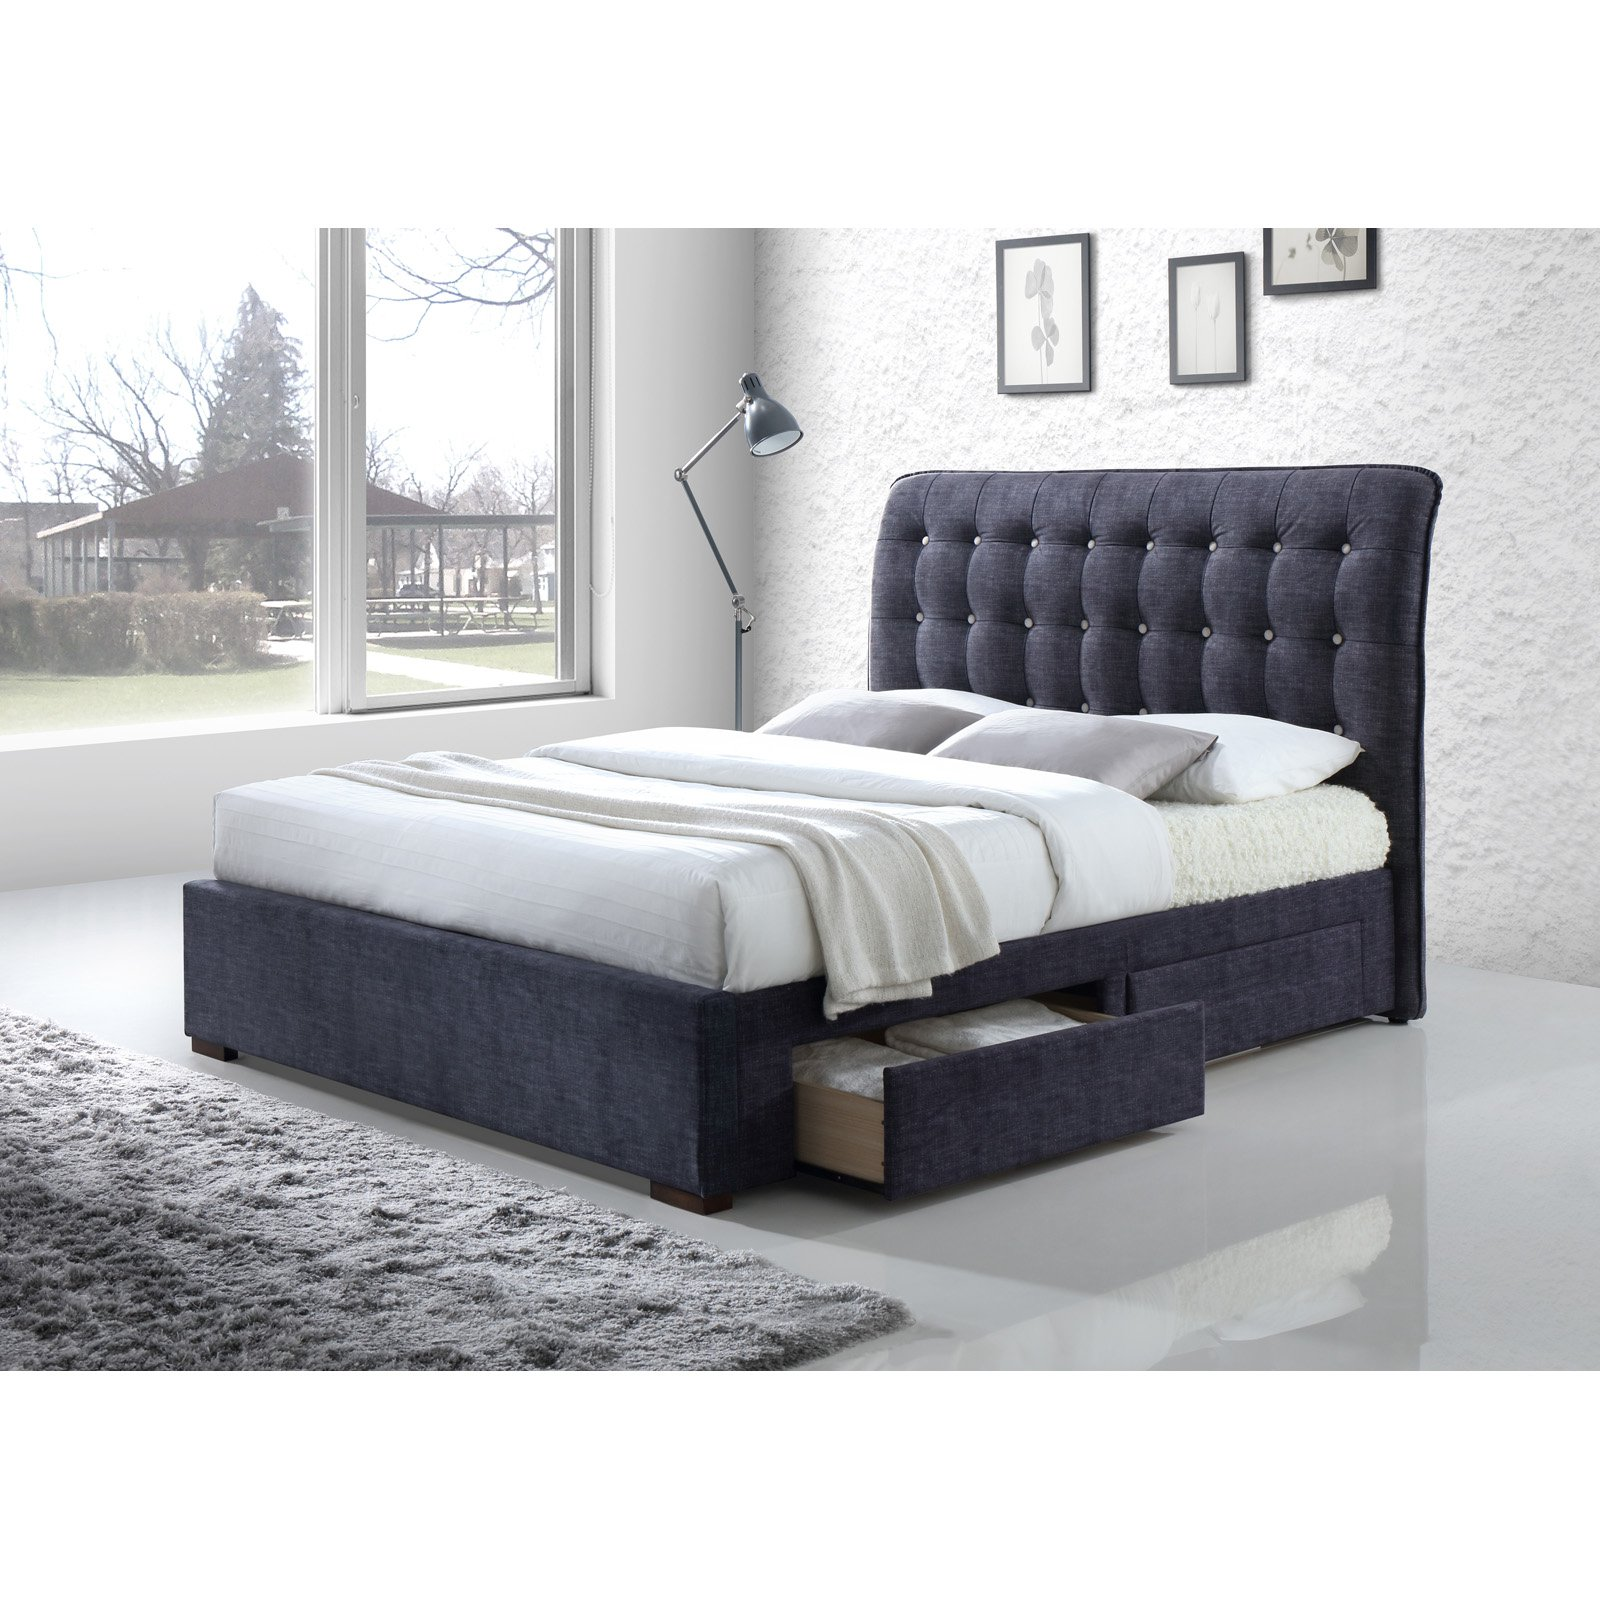 ACME Drorit Queen Bed with Storage in Dark Gray Fabric, Multiple Sizes